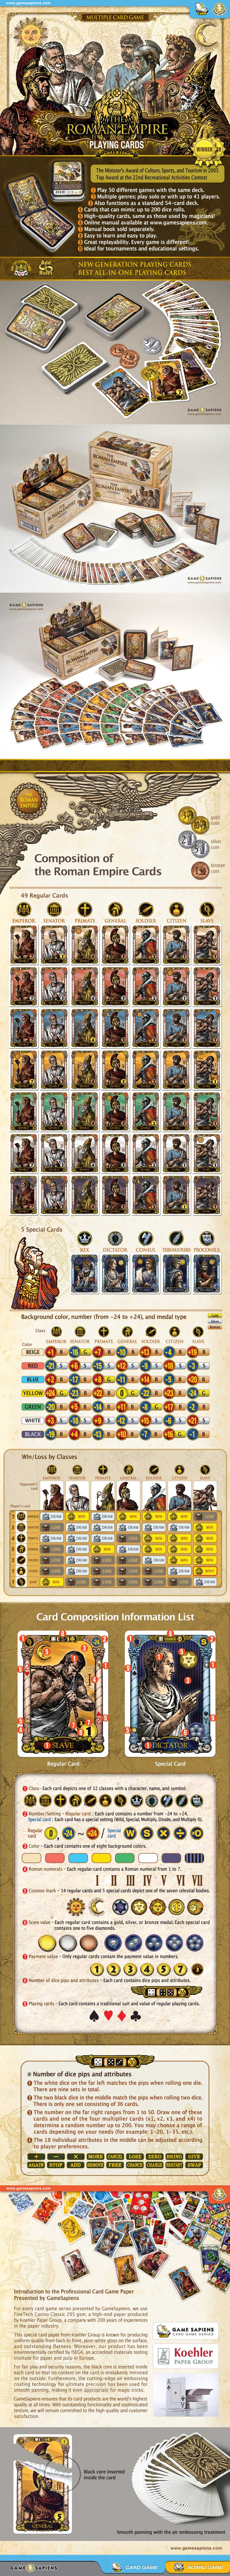 Roman-Empire-Card-Info-ENG.jpg